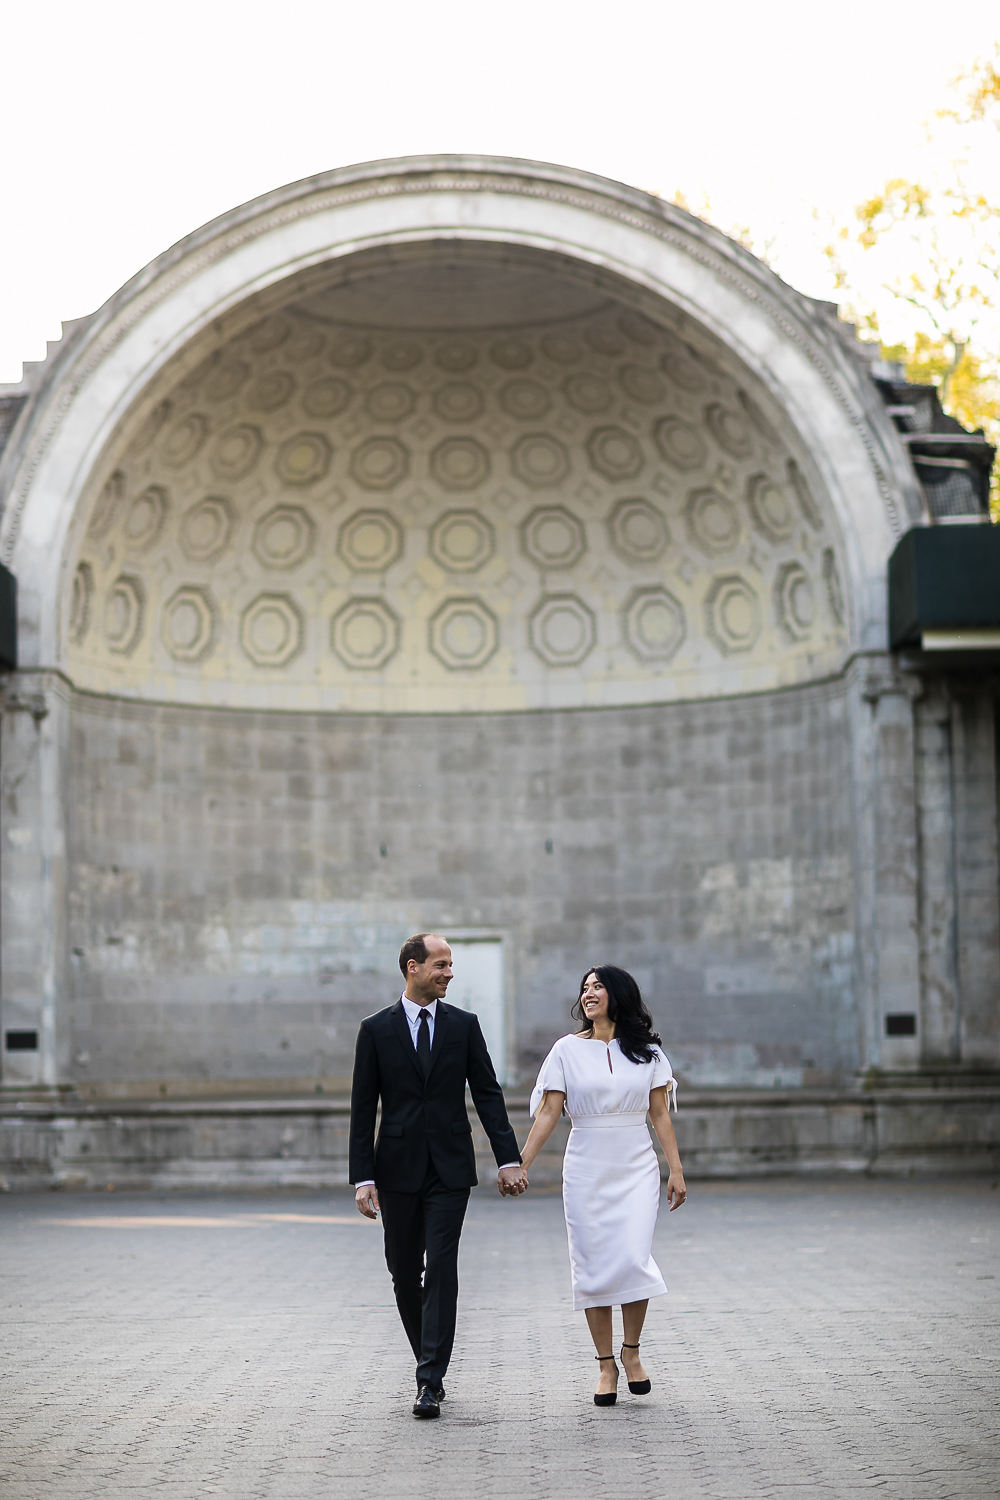 Bride and groom taking wedding photos at Naumburg Bandshell in Central Park. | Early Morning Sunrise Central Park Elopement in New York City.